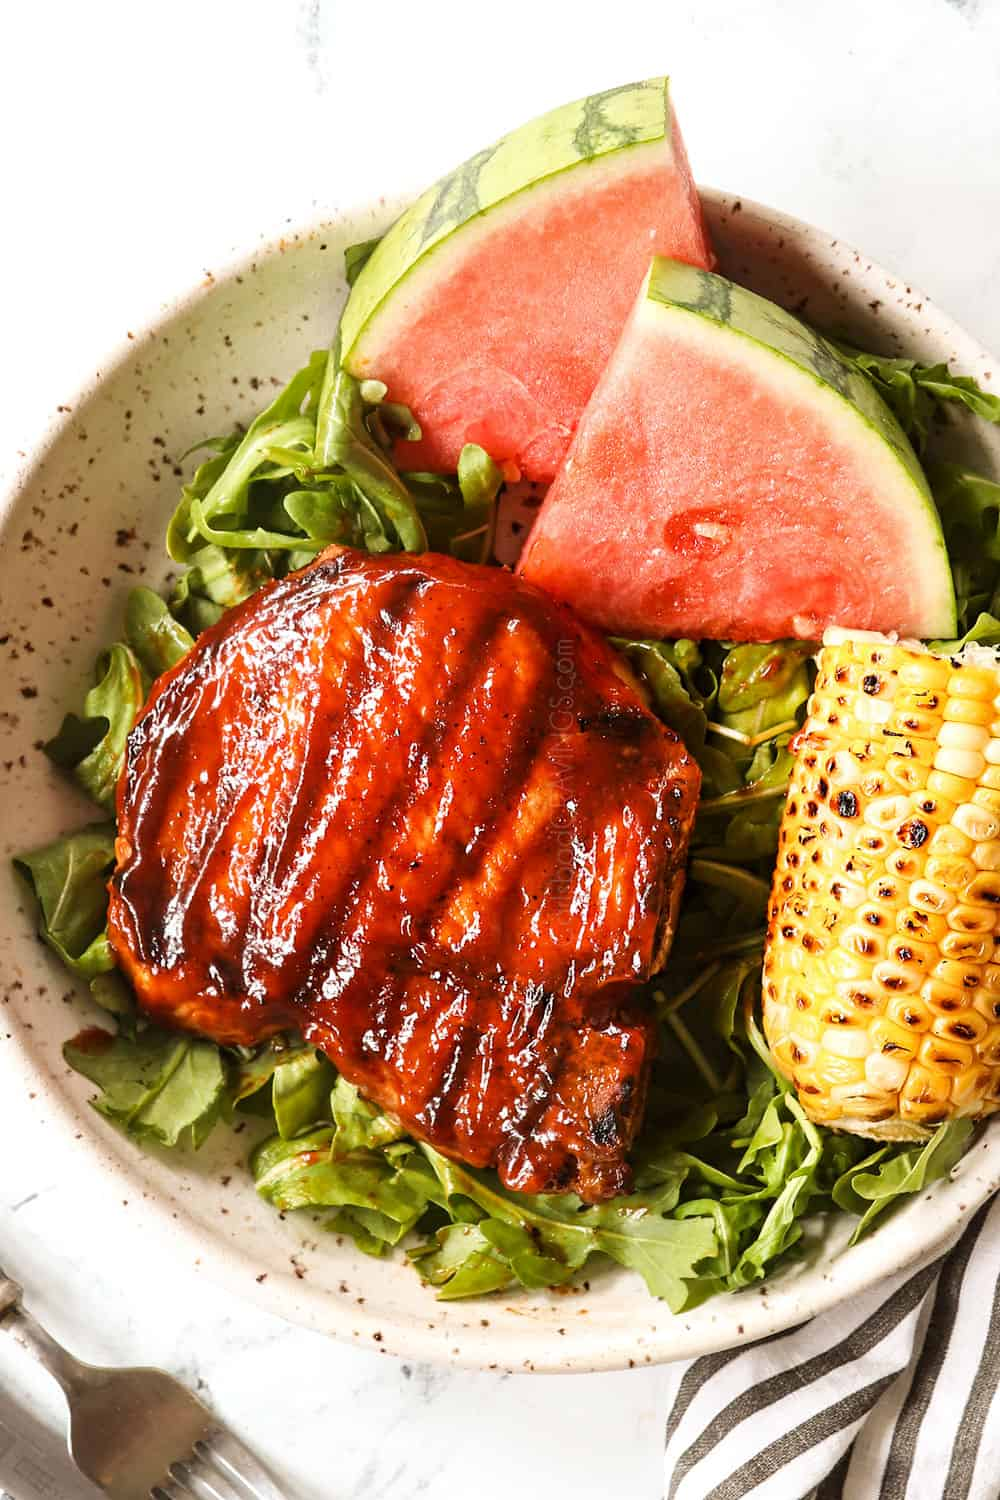 grilled bone in pork chops on a plate with salad, watermelon and grilled corn on the cob